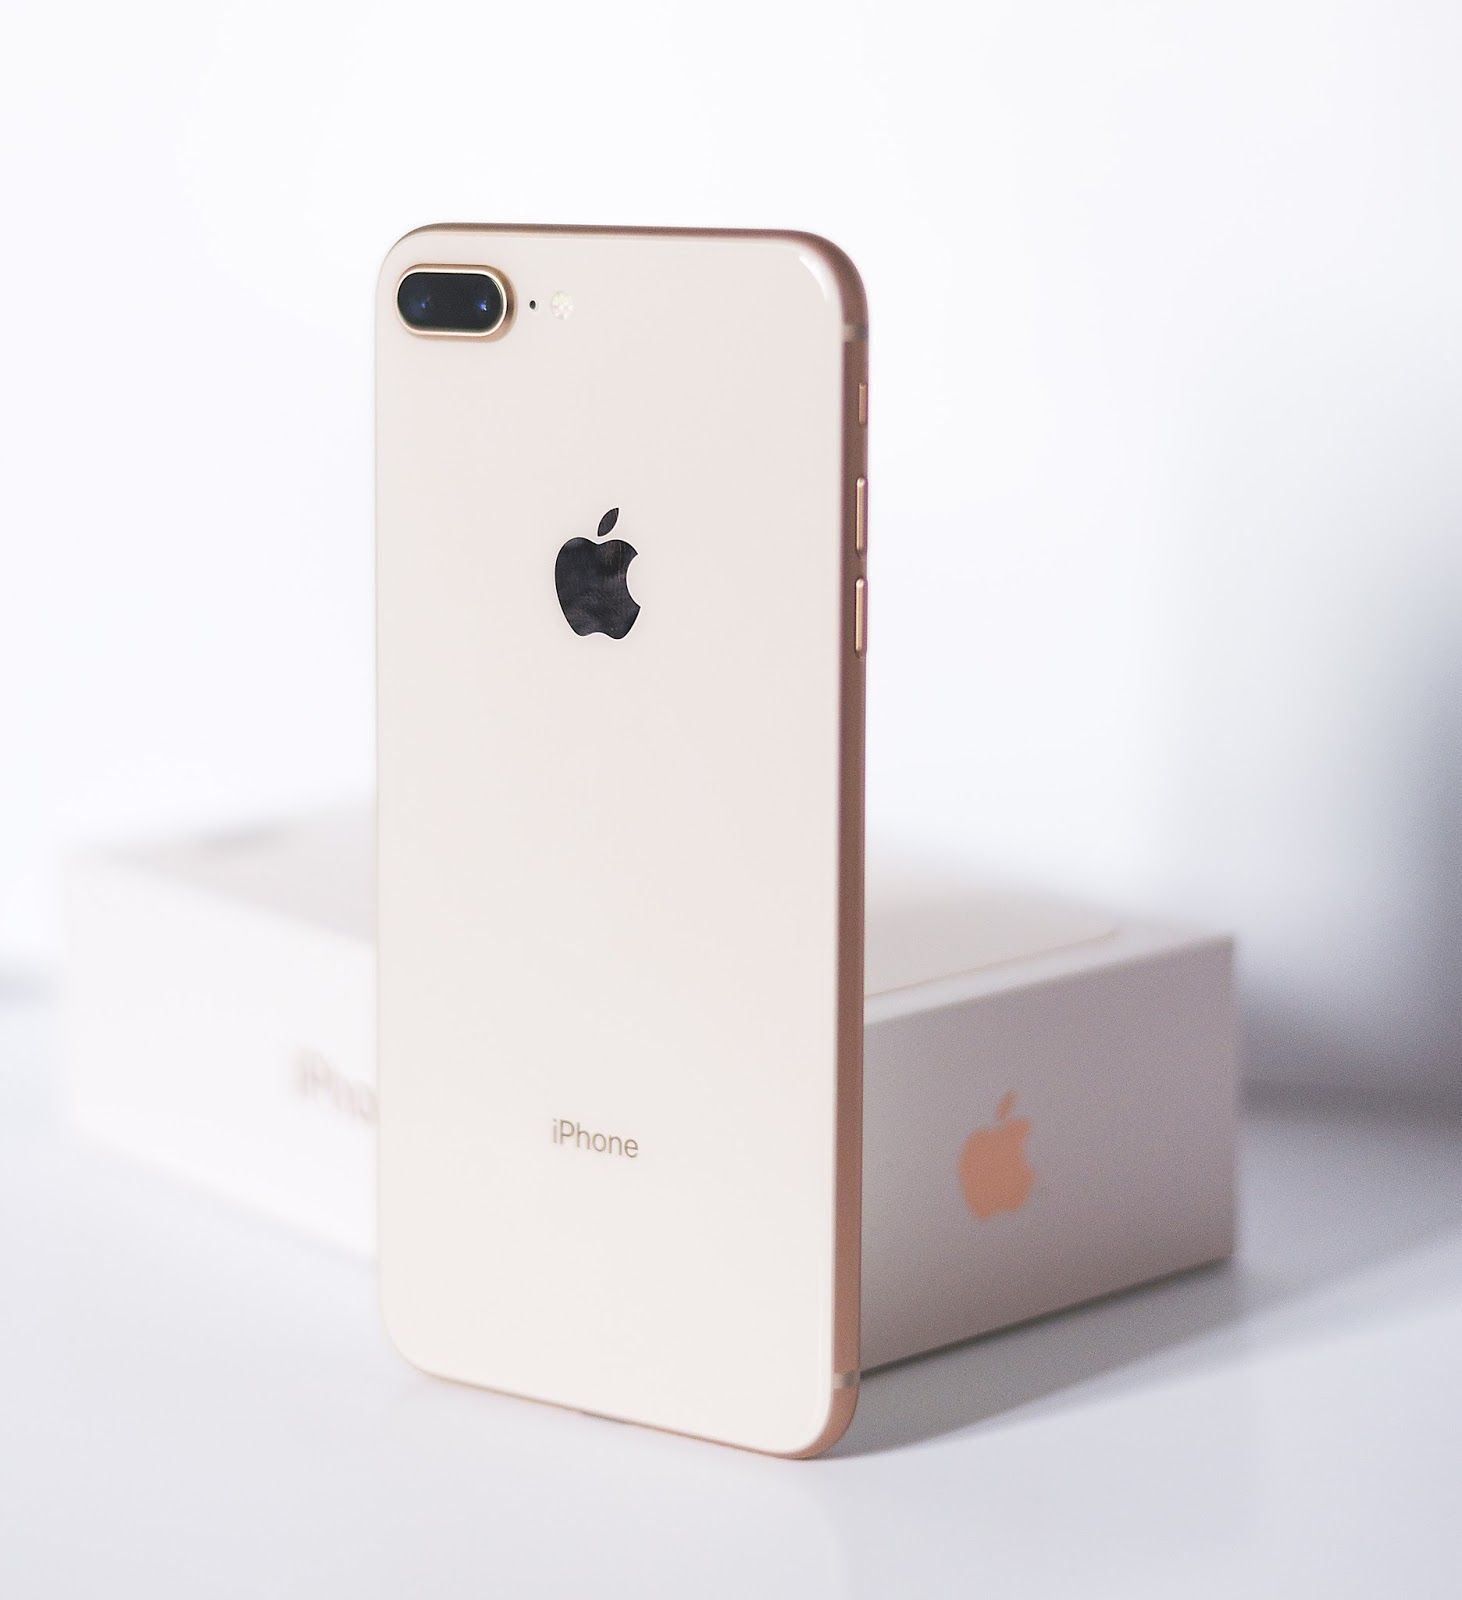 Danielle Deangelis Iphone 8 Plus Review With Photos Iphone Iphone 8 Plus Apple Products